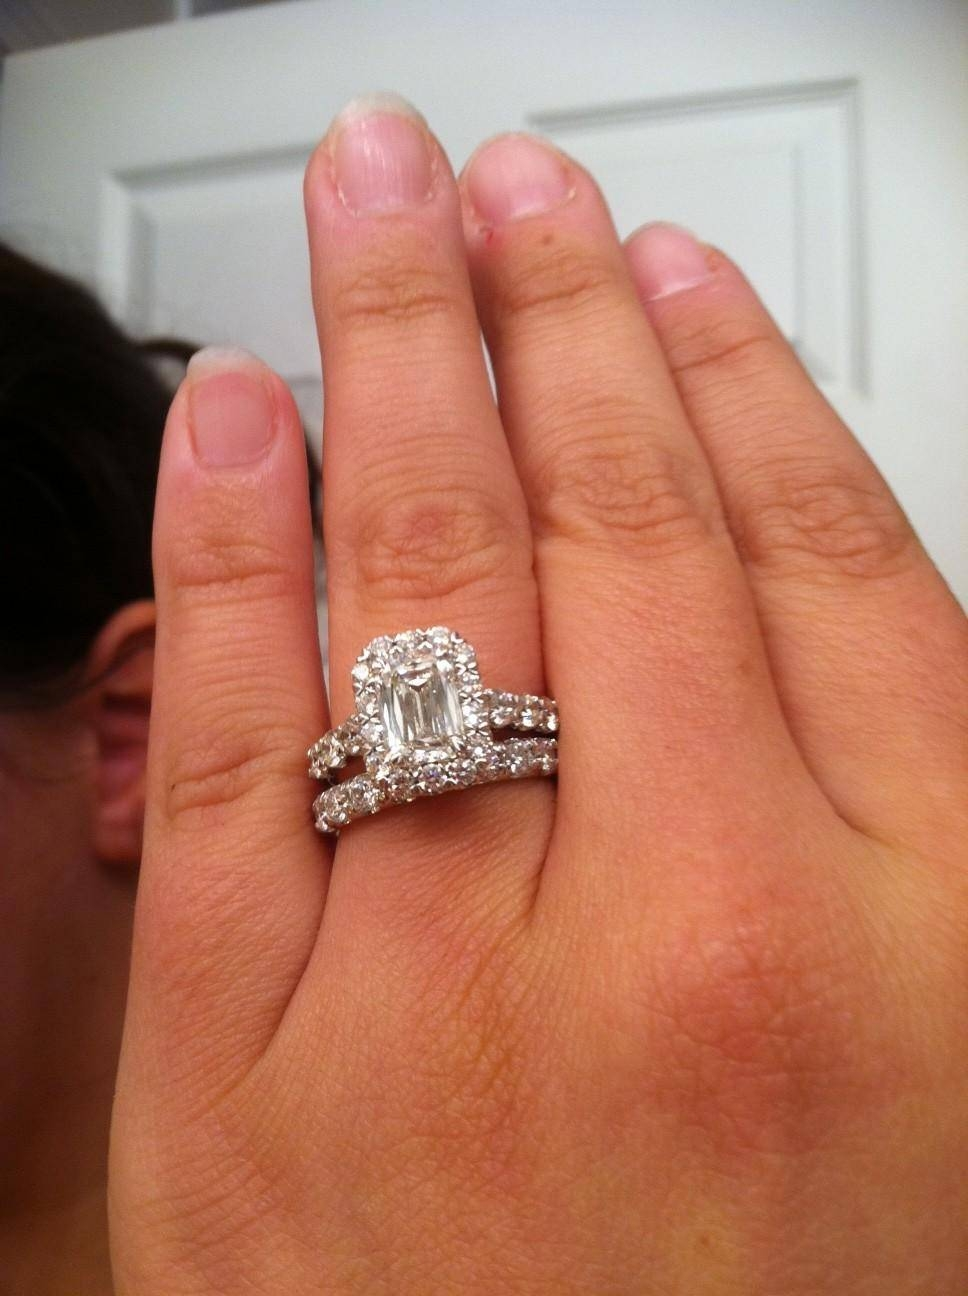 Engagement Rings : Beautiful Engagement Ring Costco Costco Pertaining To Costco Diamond Engagement Rings (View 9 of 15)